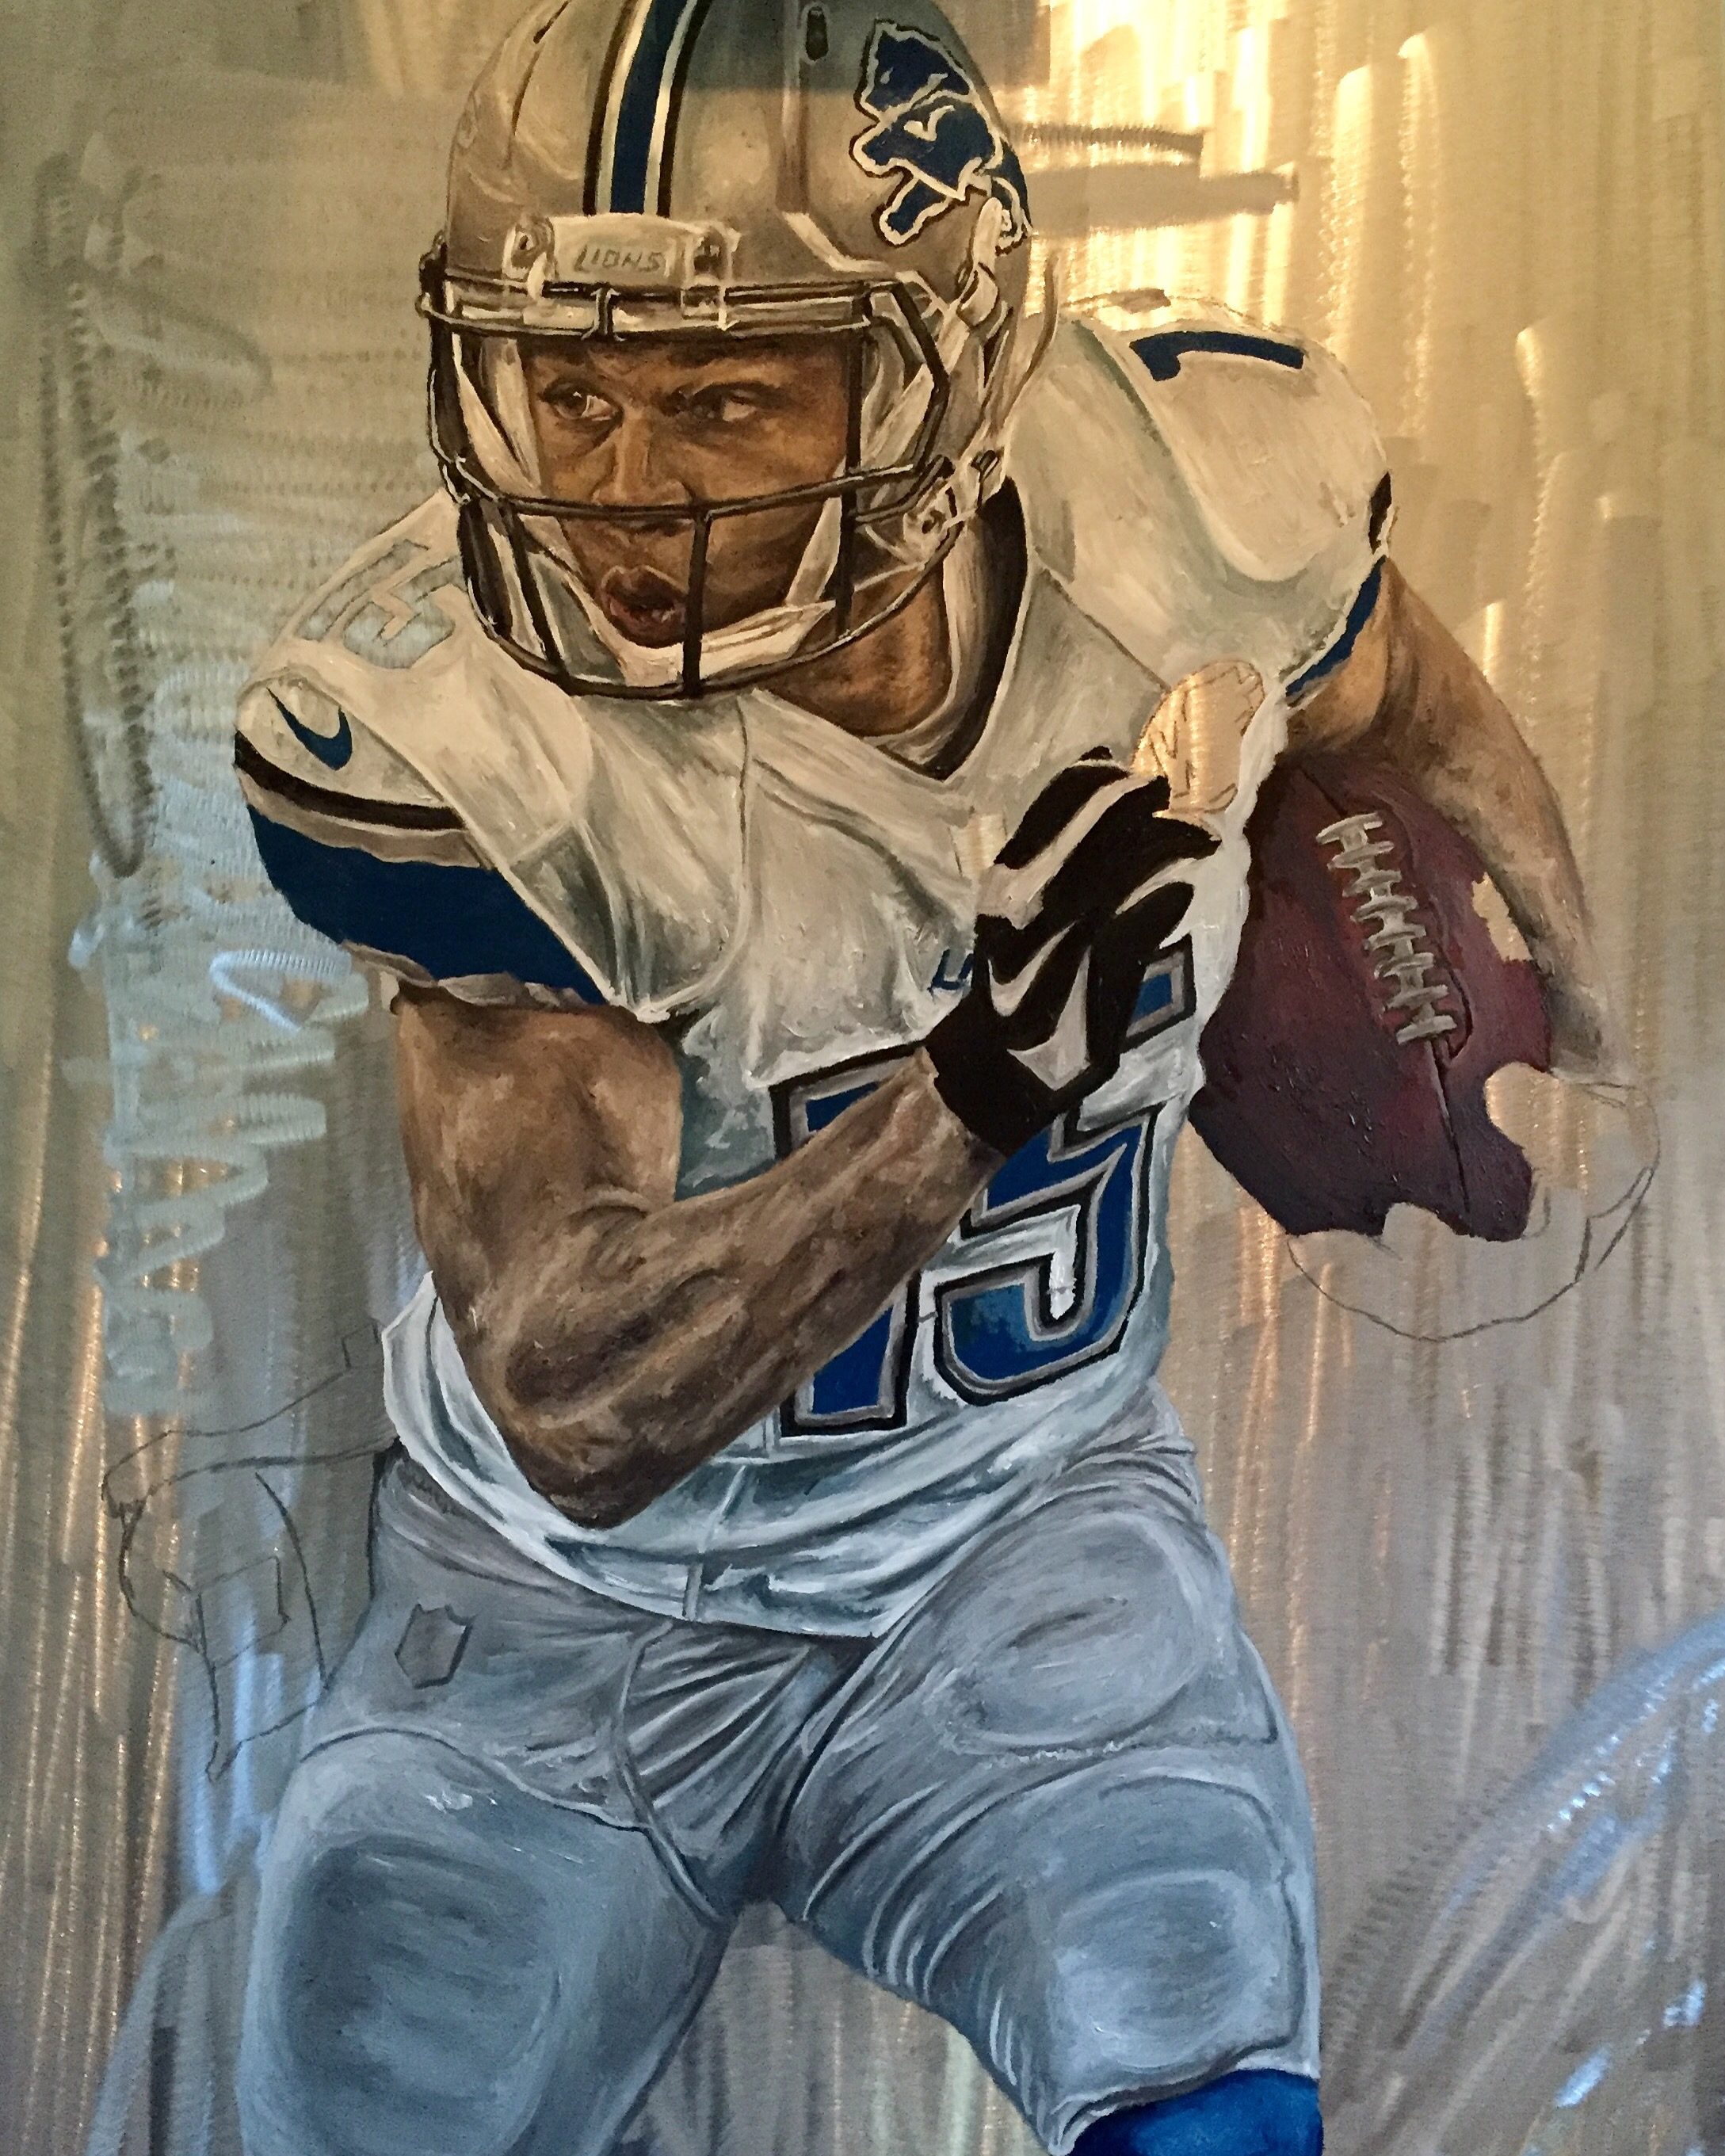 Golden Tate Sports Art